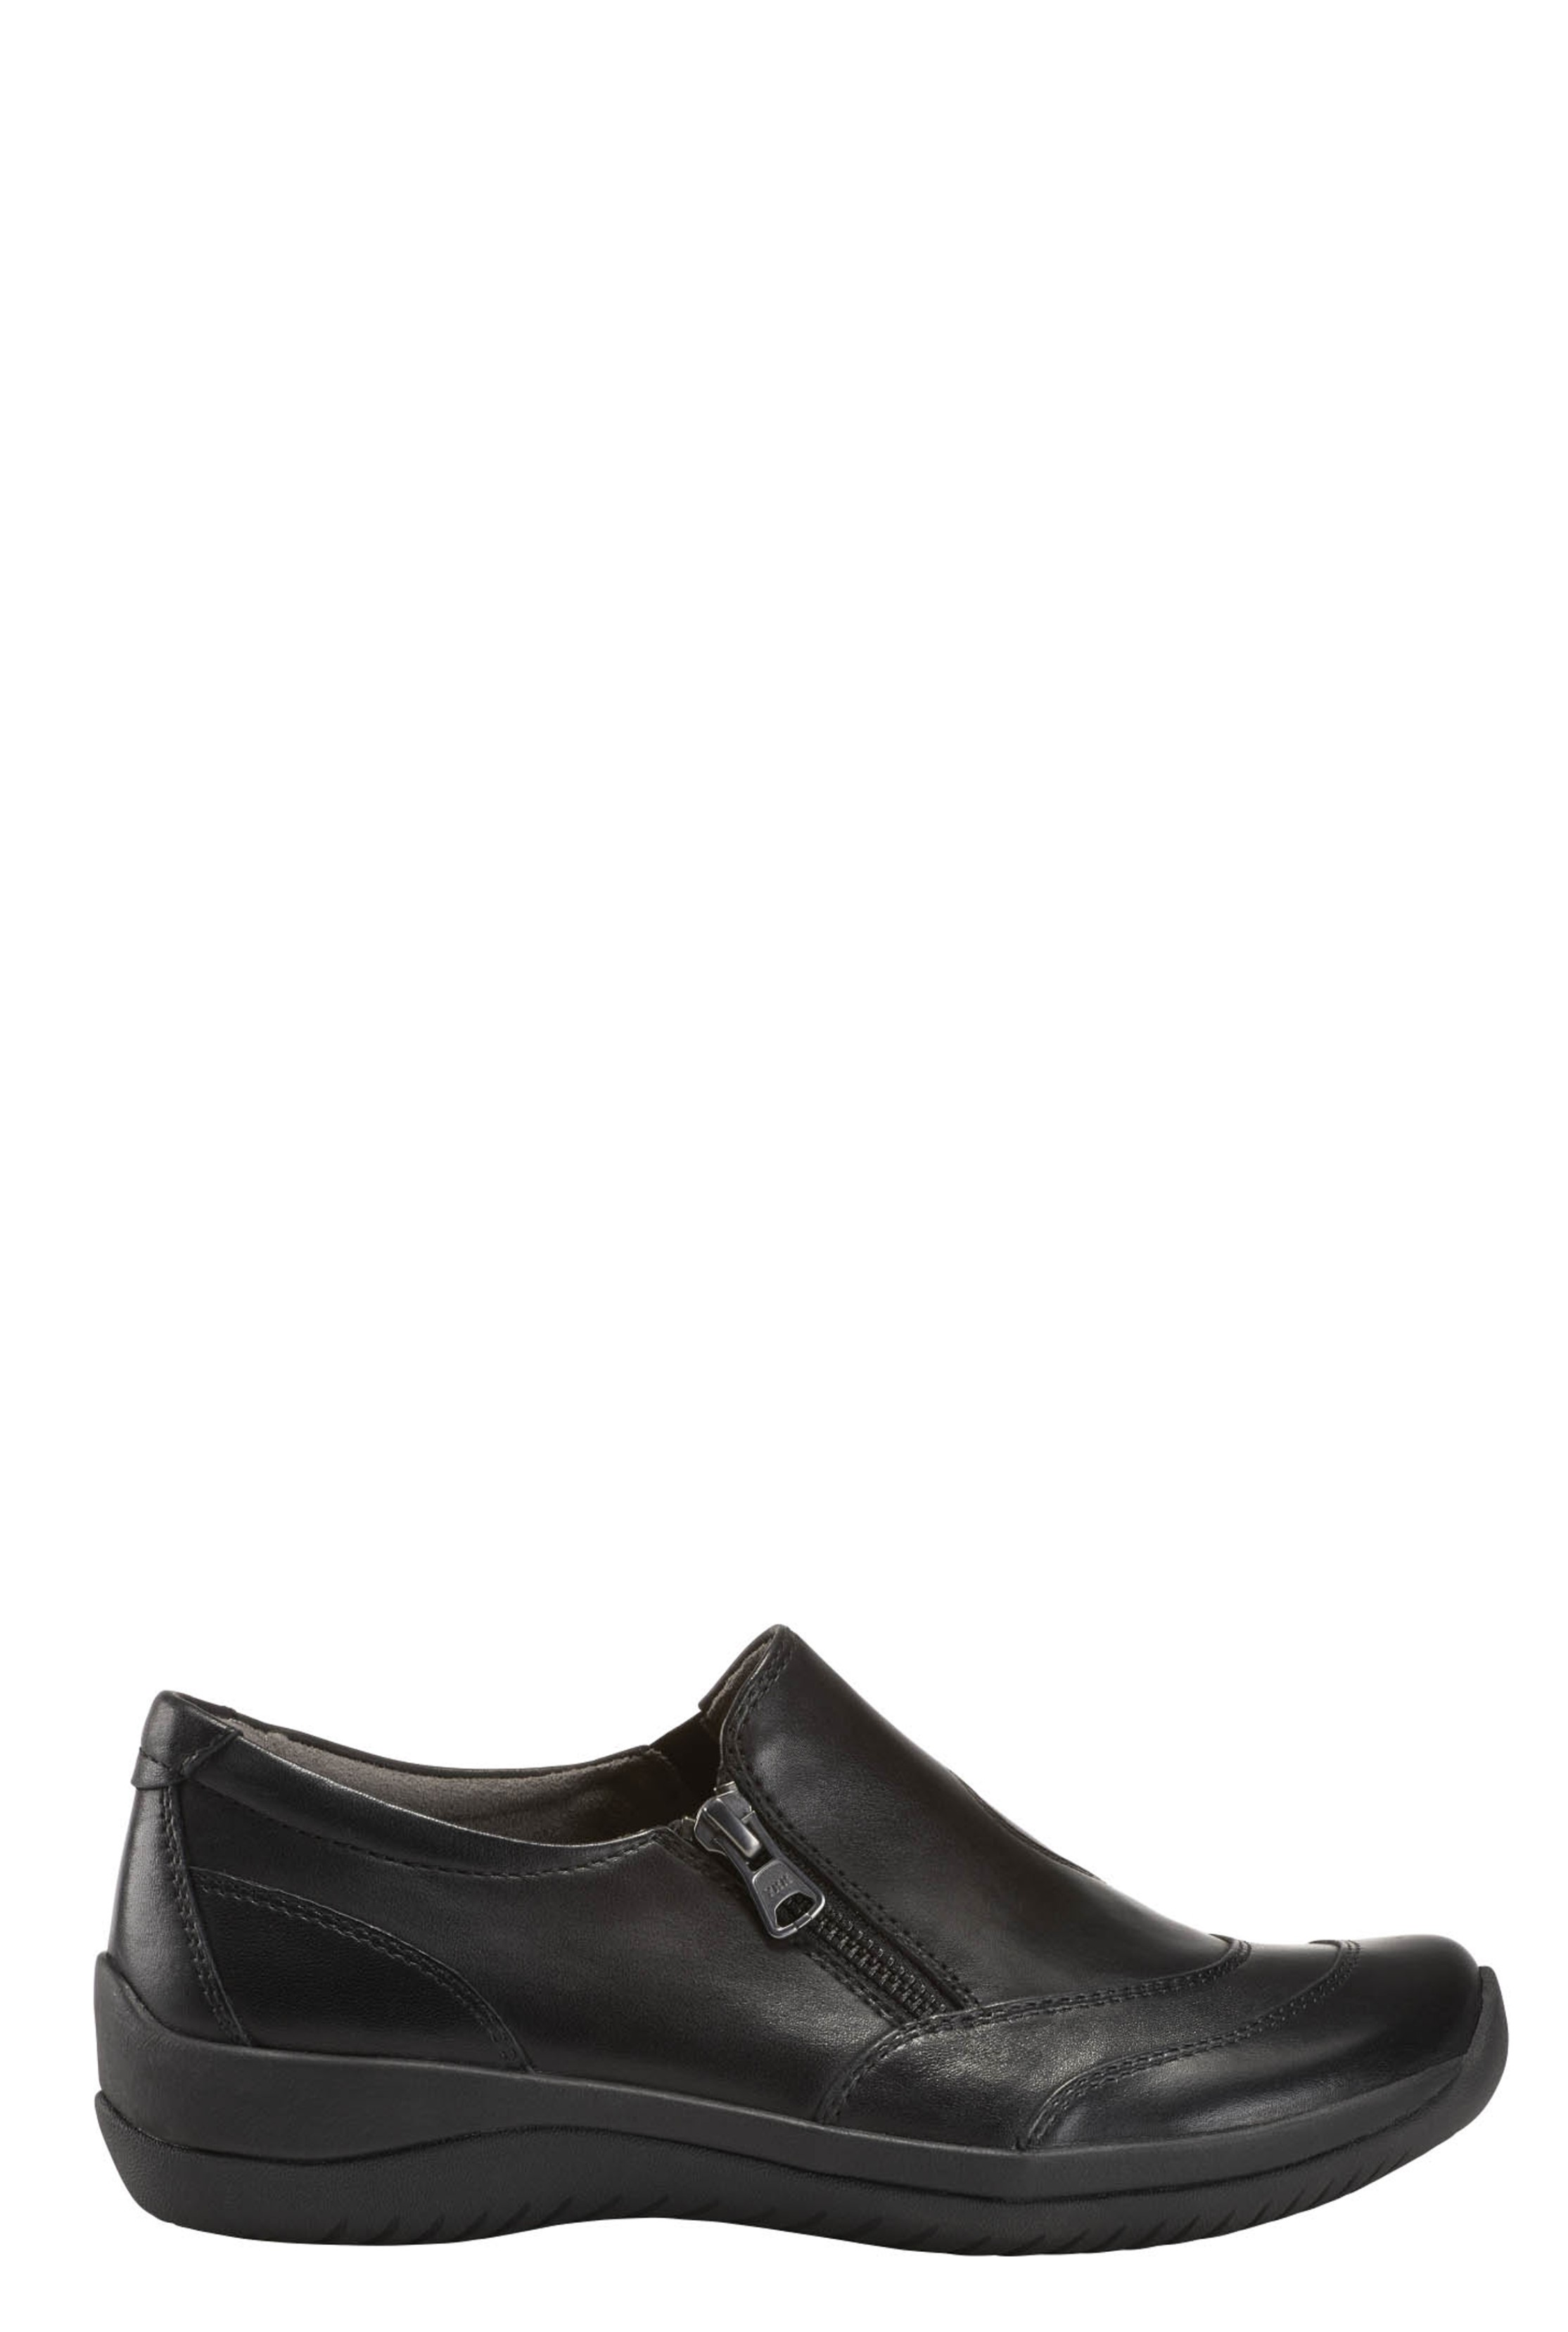 Black Earth Kara Faraday Casual Shoe